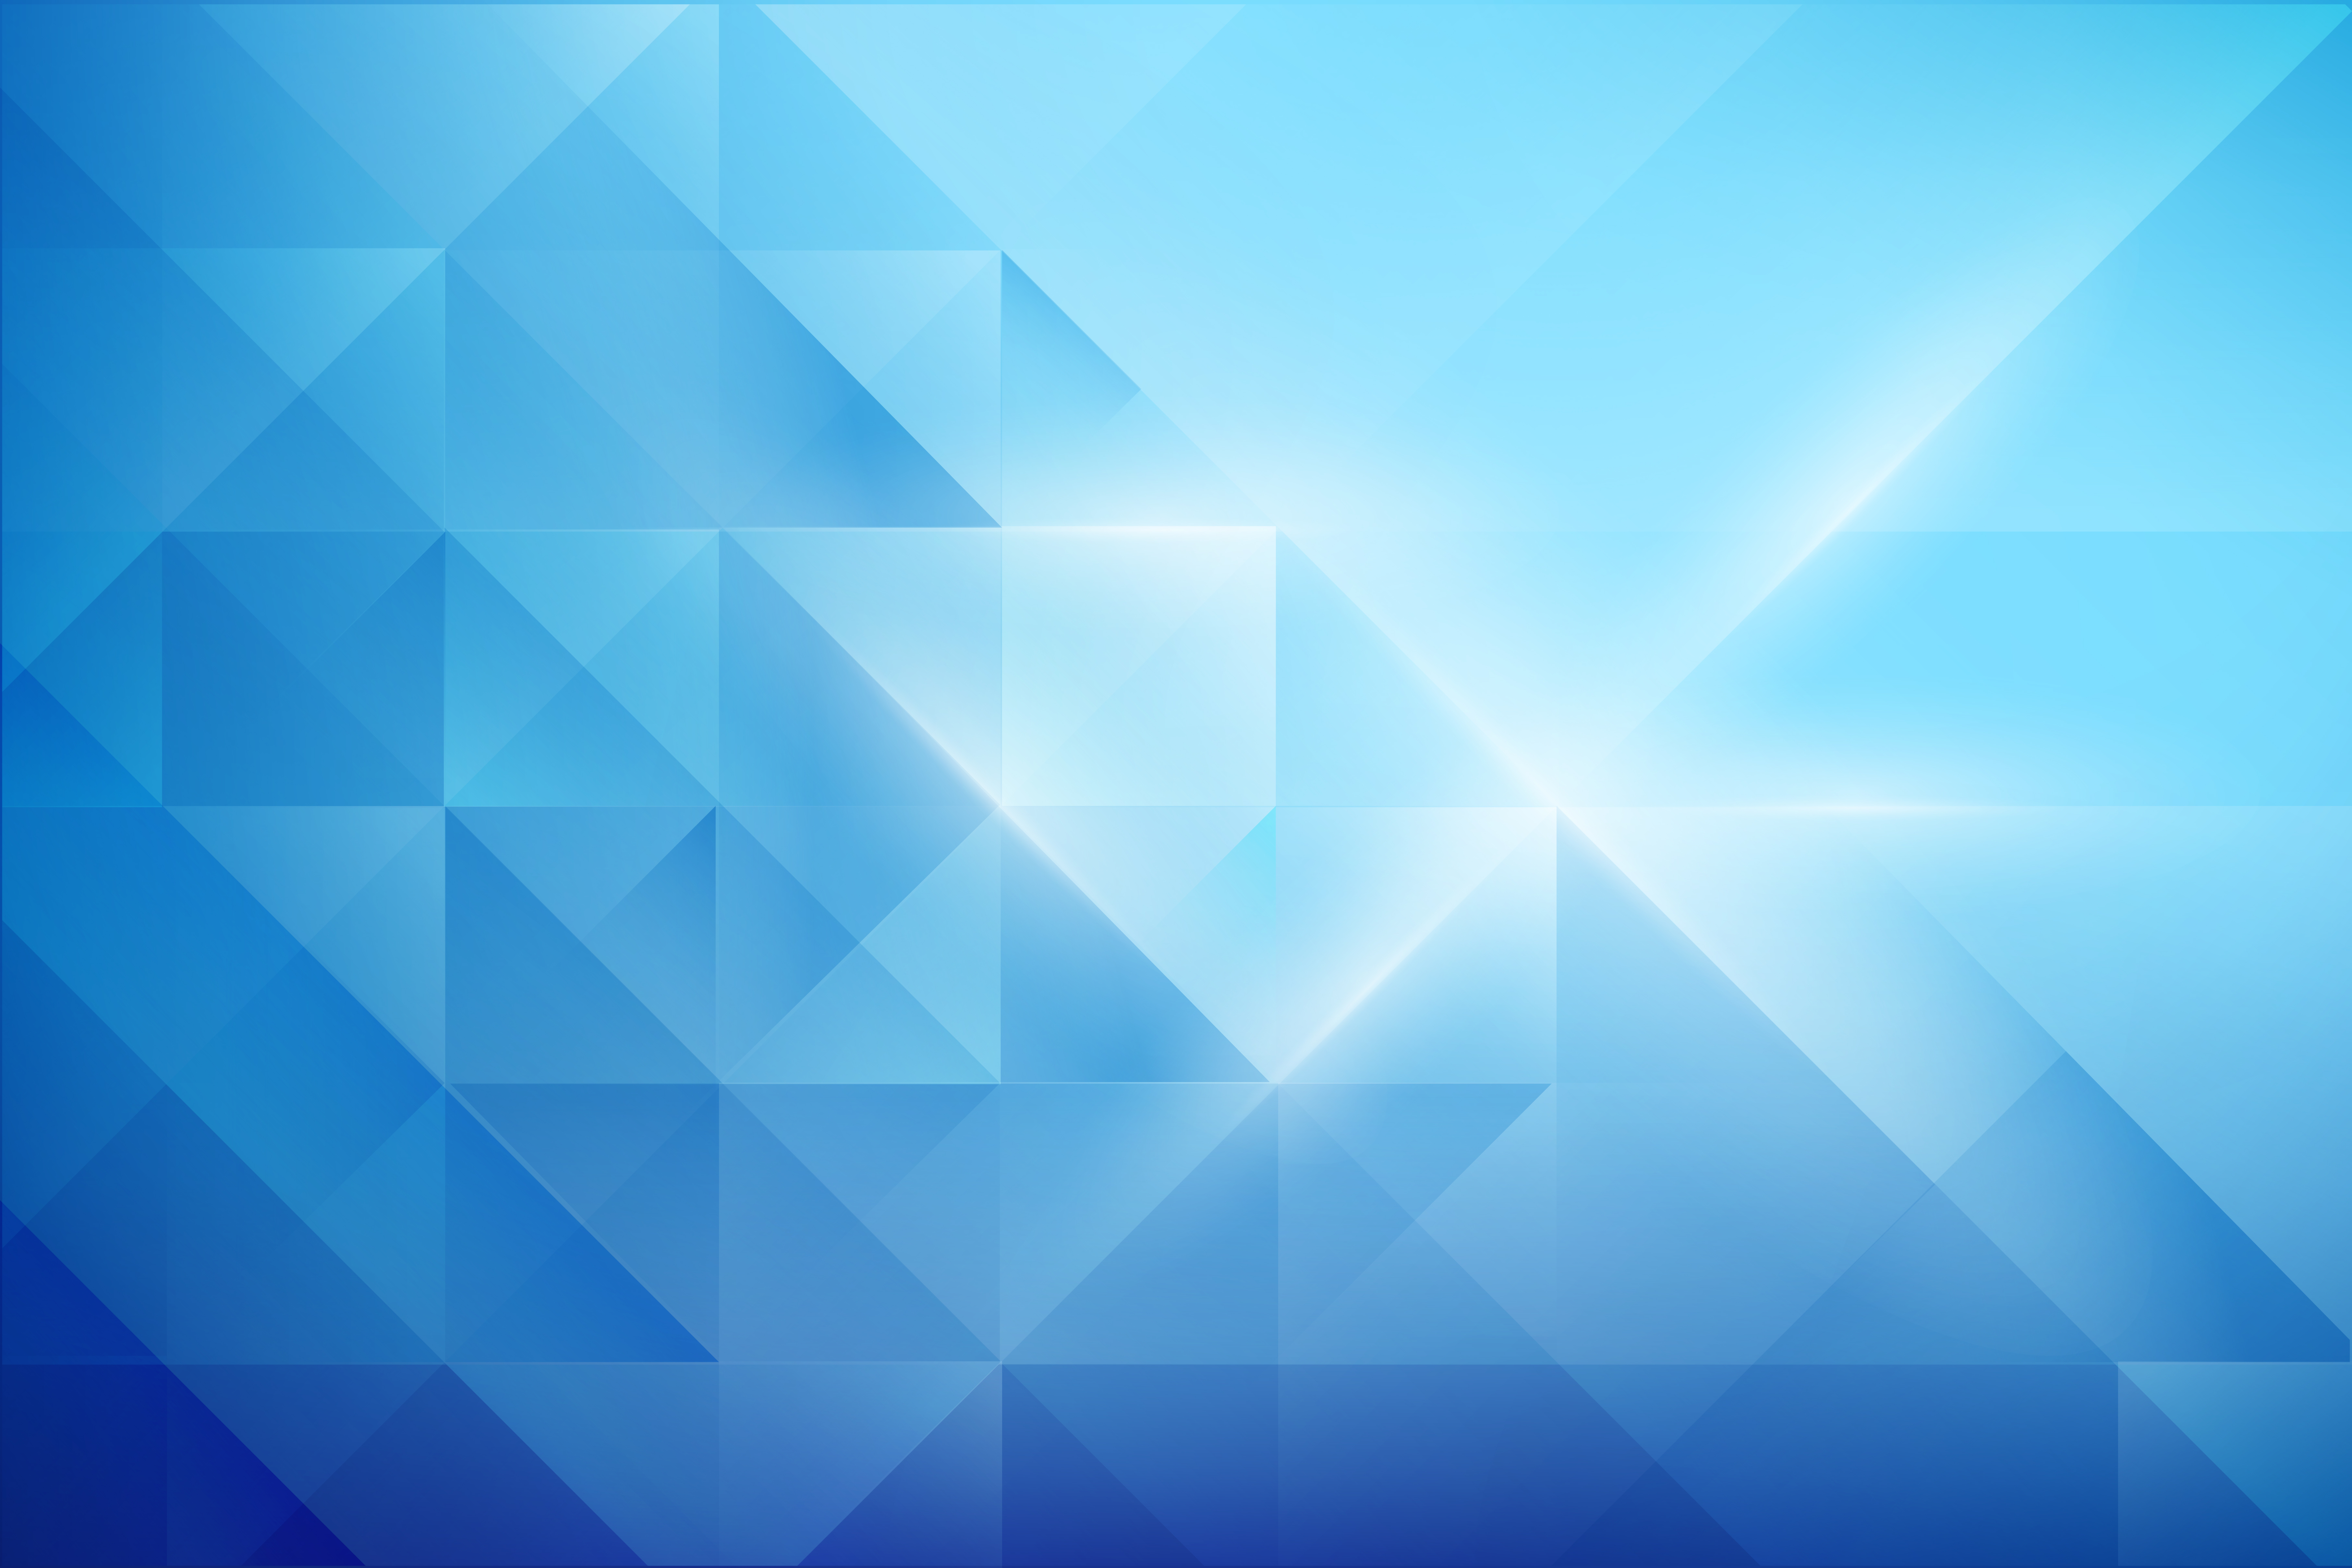 vector-abstract-blue-background-dark-curve-006 Web Template Design Free Download on